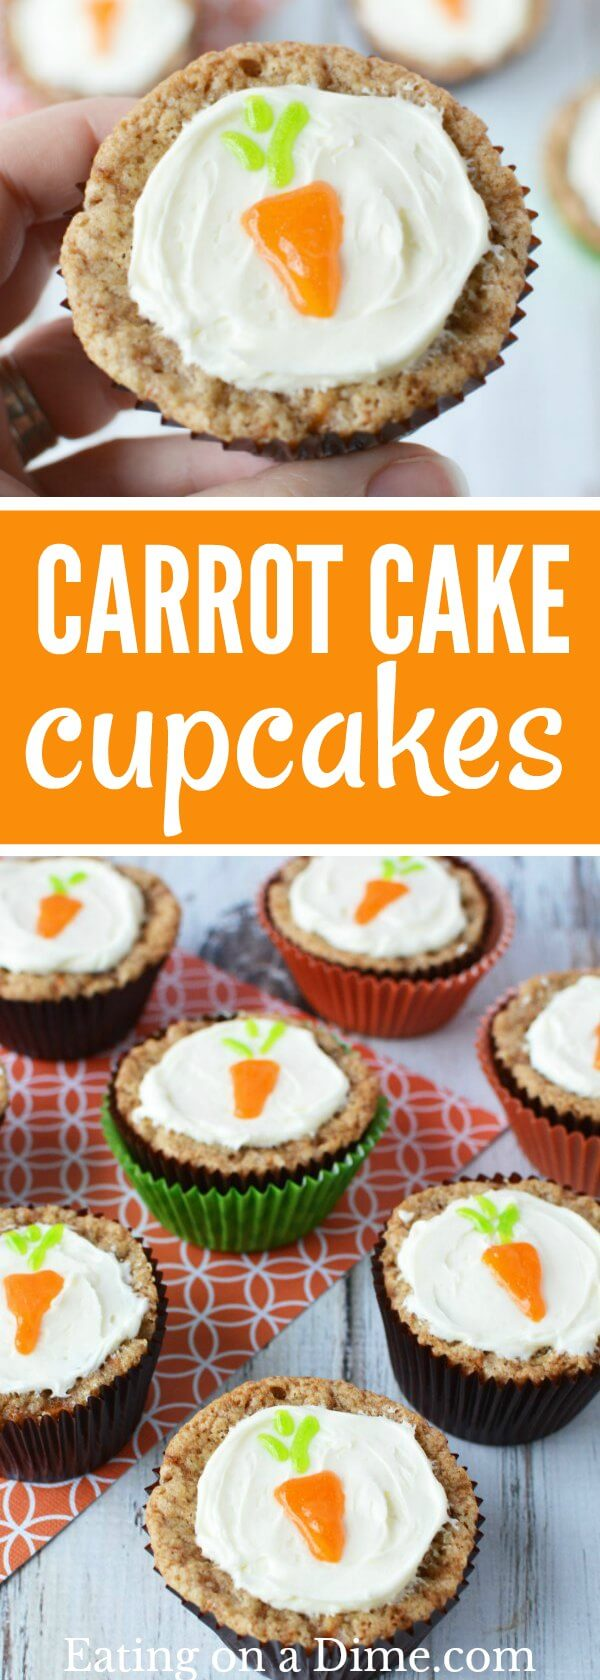 Enjoy this Easy Carrot Cake Cupcakes Recipe! The entire family will love these carrot cupcakes. They are truly the best carrot cake cupcakes. Carrot Cake Muffins are so cute! Make carrot muffins today.